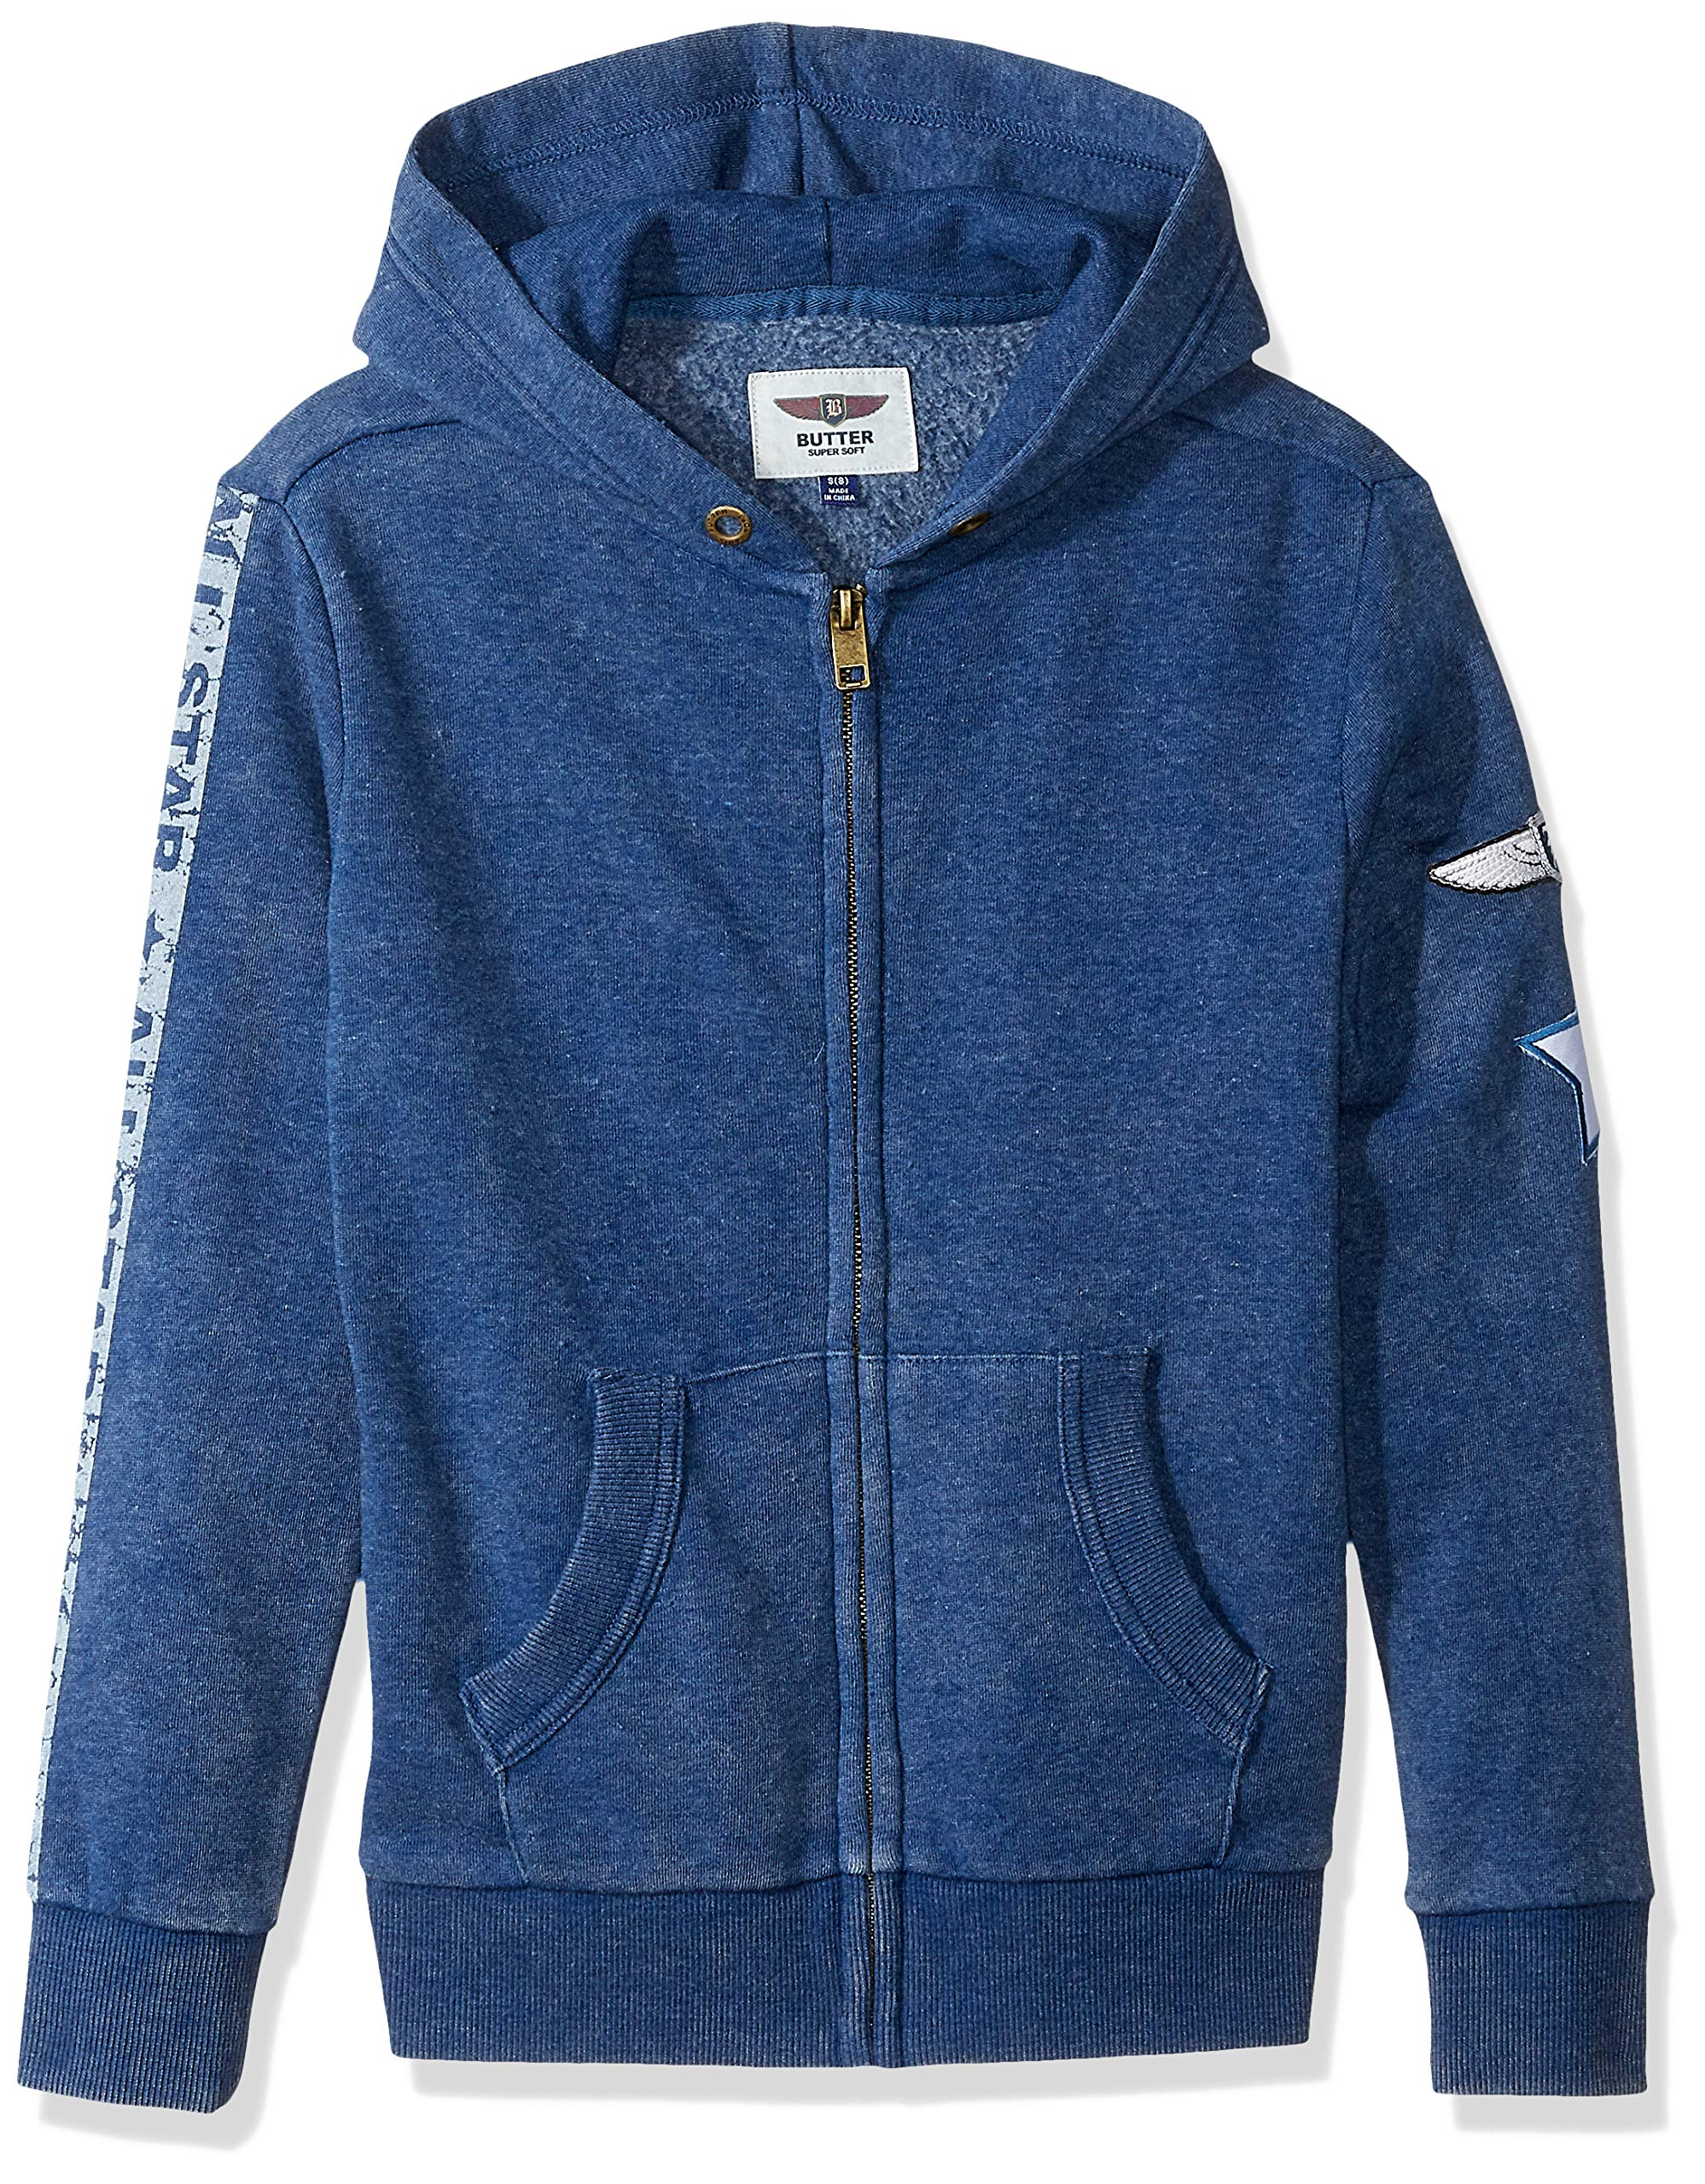 Butter Boys' Big Mineral Wash Fleece Zip Up Hoodie, Estate Blue, M